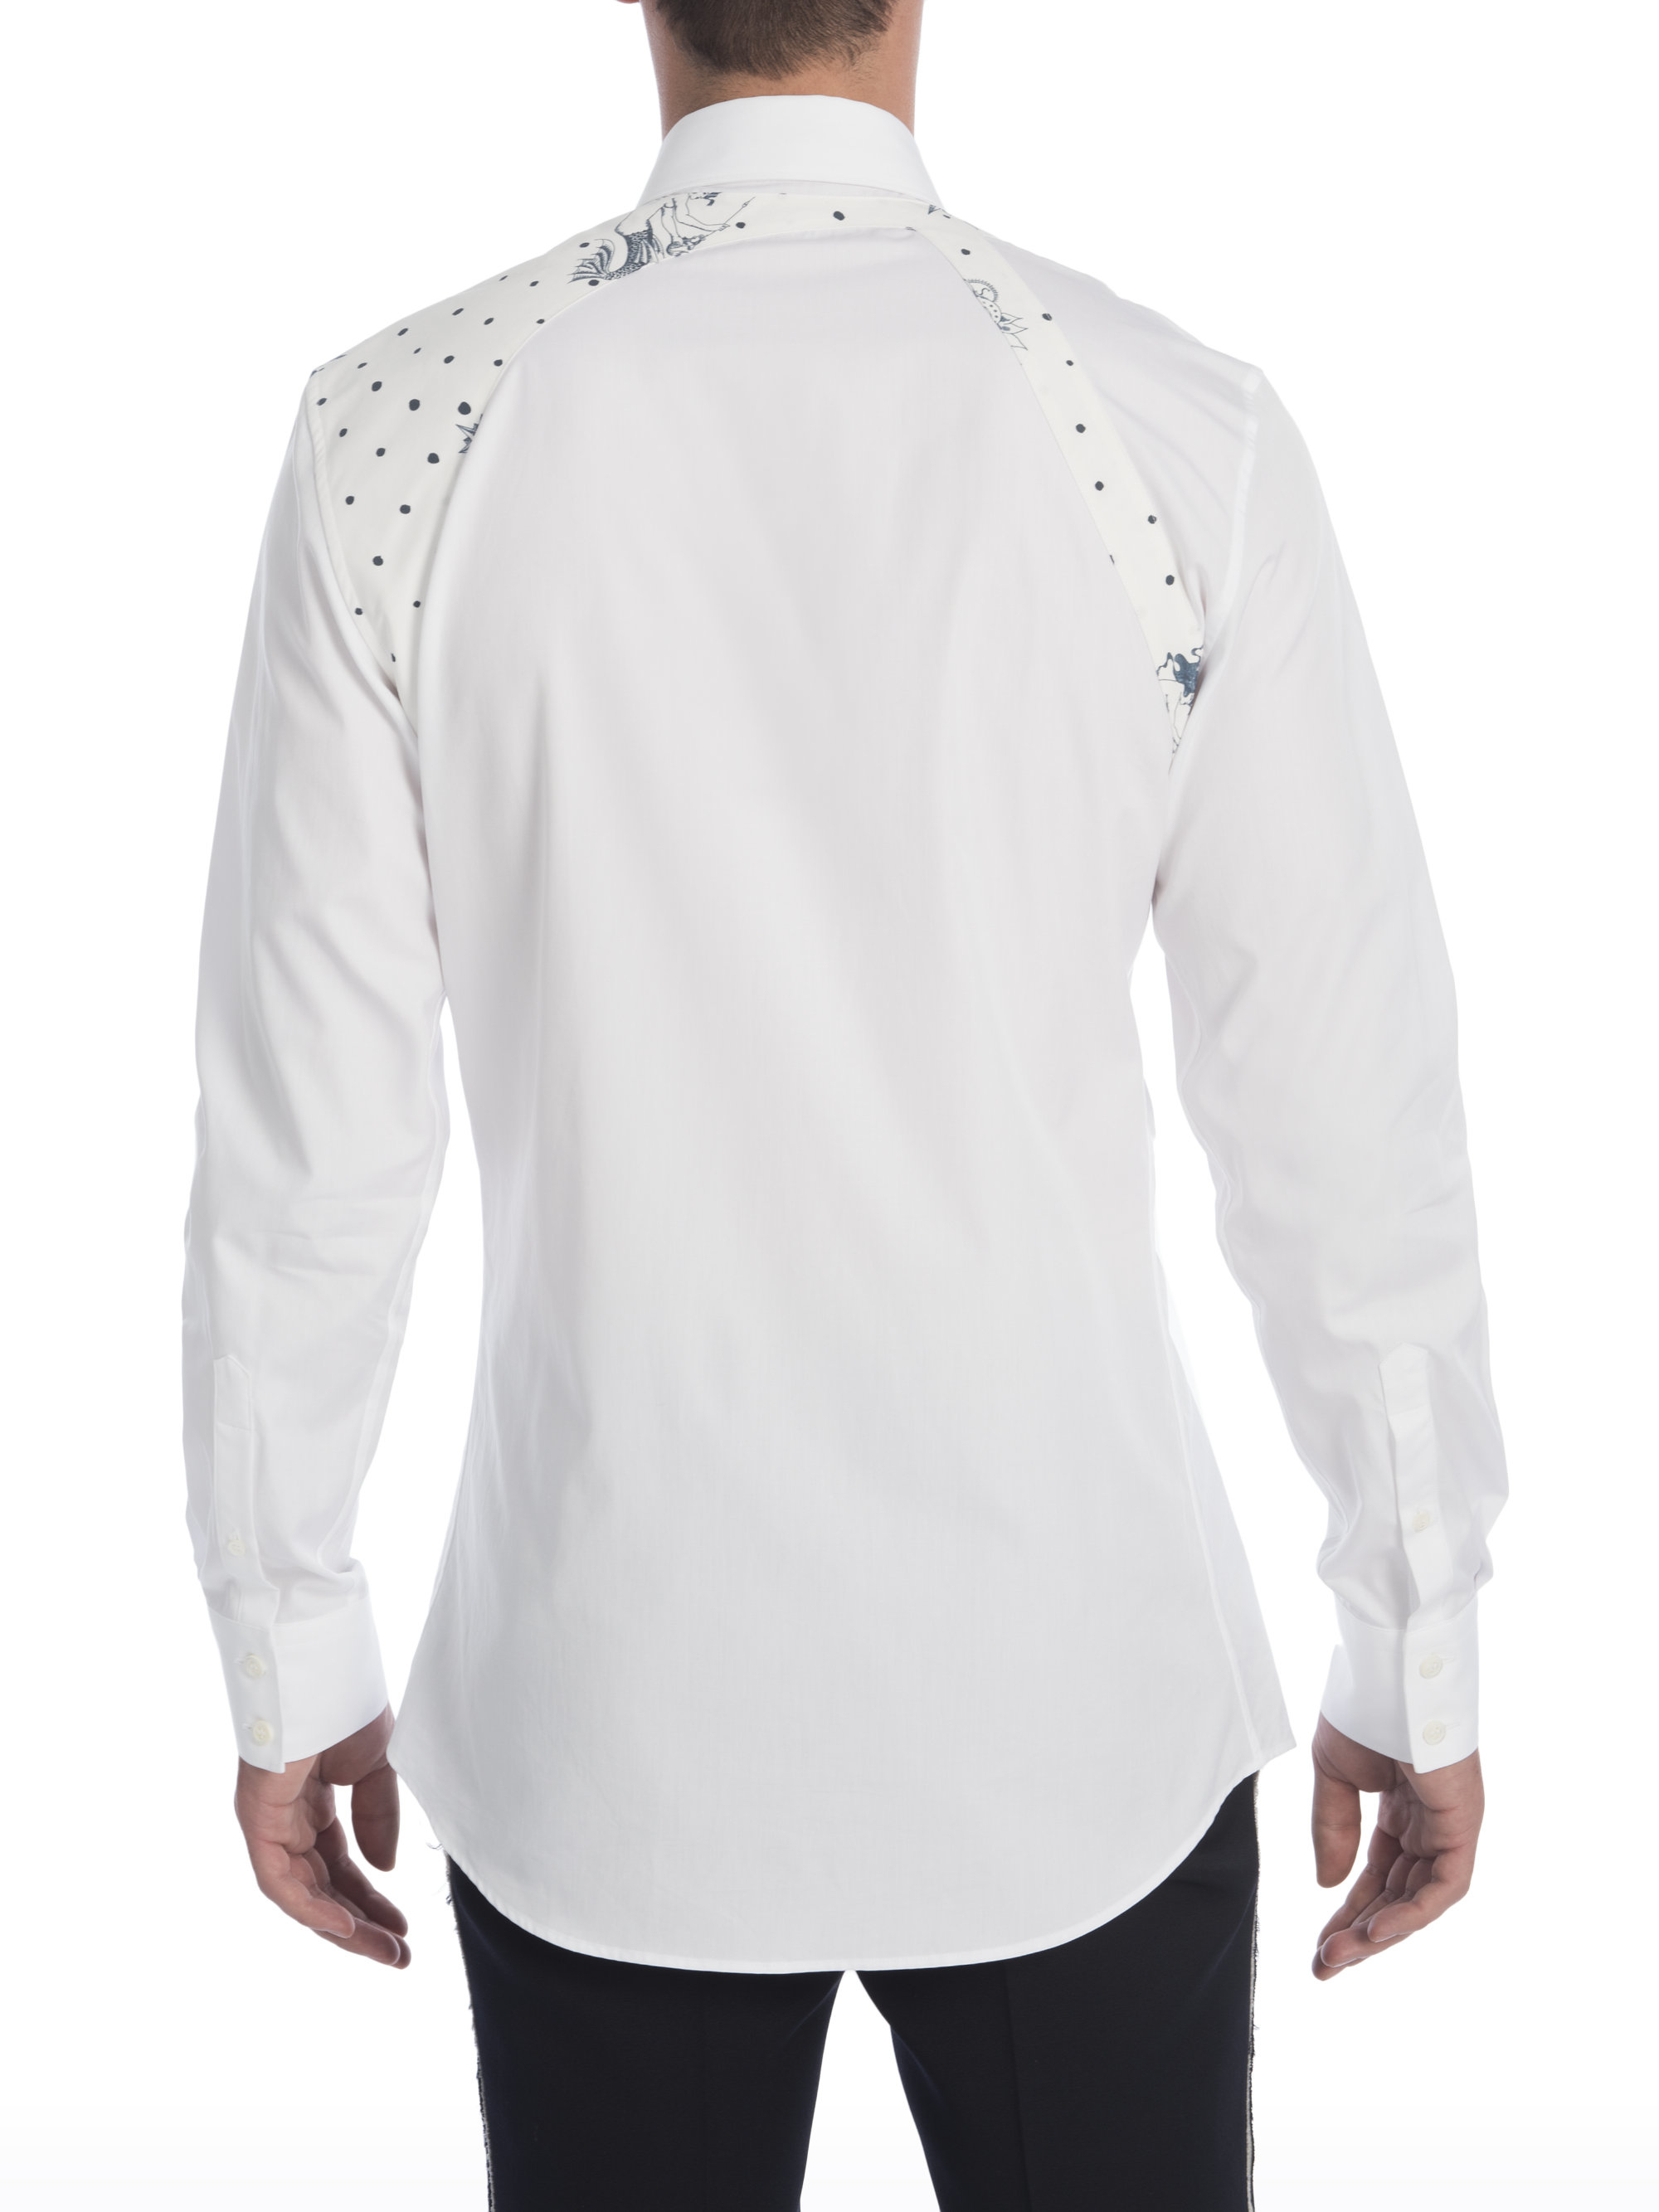 b2a18b67 Alexander McQueen Harness Lost At Sea Shirt in White for Men - Lyst